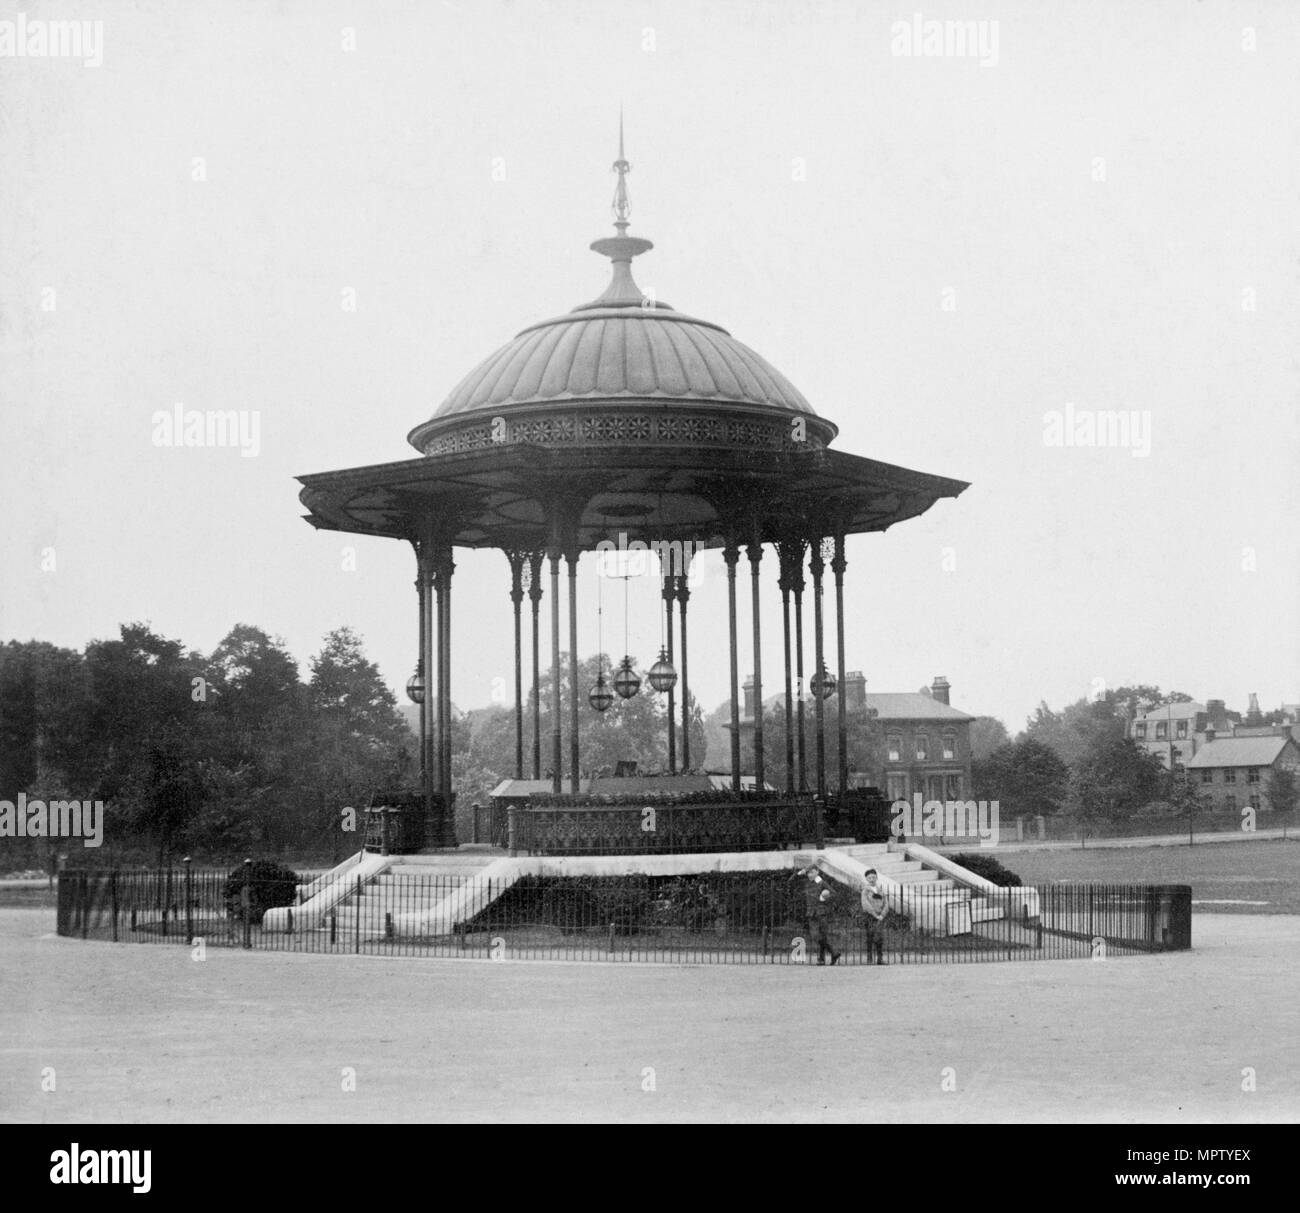 Bandstand on Peckham Rye Common, Southwark, London, 1862-1890. Artist: Unknown. - Stock Image